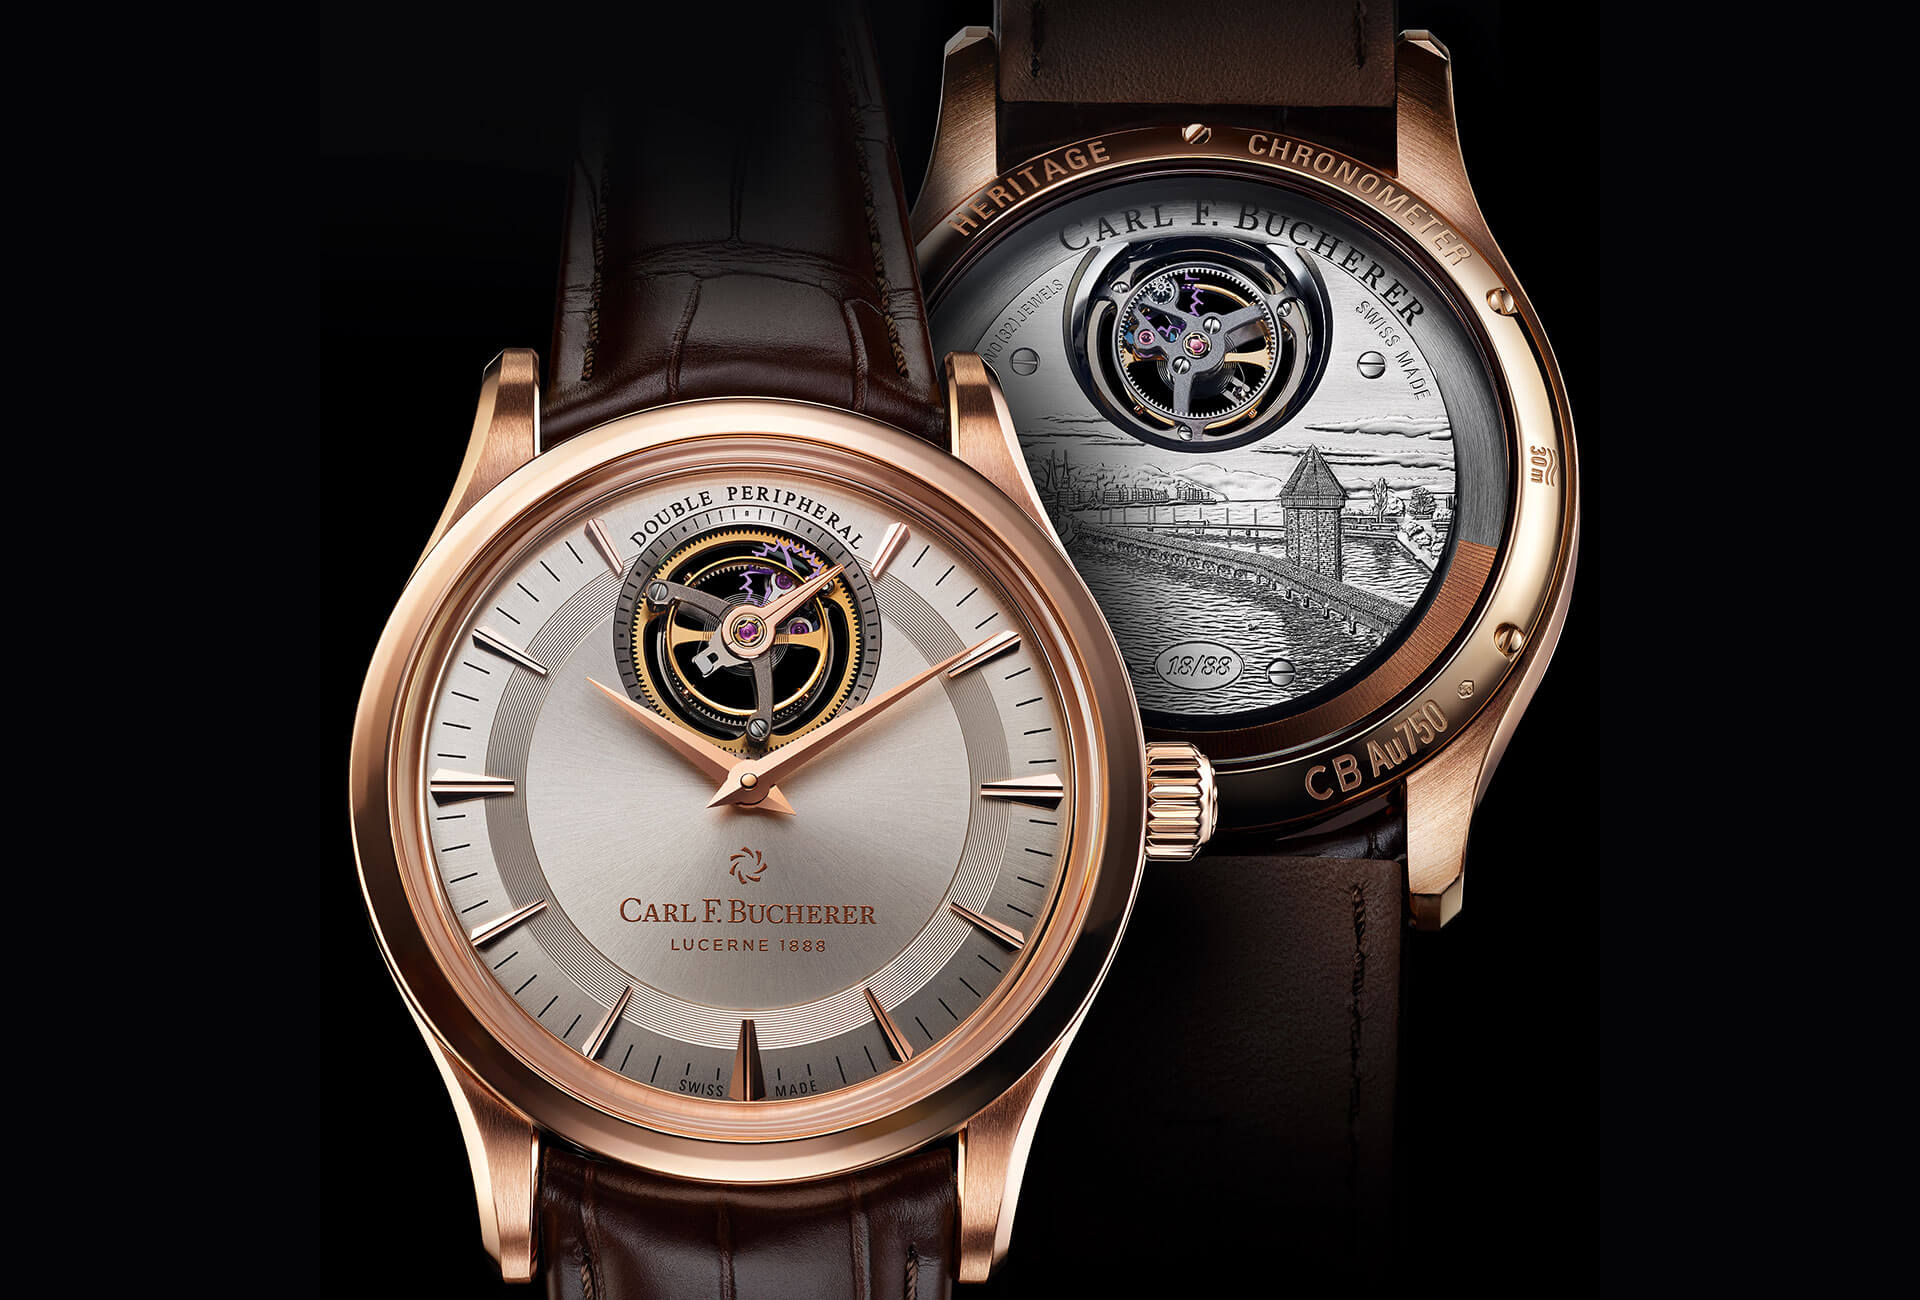 Discover the Wonders of Haute Holorgerie at SIHH 2019 - FHH - Fondation sihh 2019 Discover the Wonders of Haute Horlogerie at SIHH 2019 Discover the Wonders of Haute Holorgerie at SIHH 2019 FHH Fondation